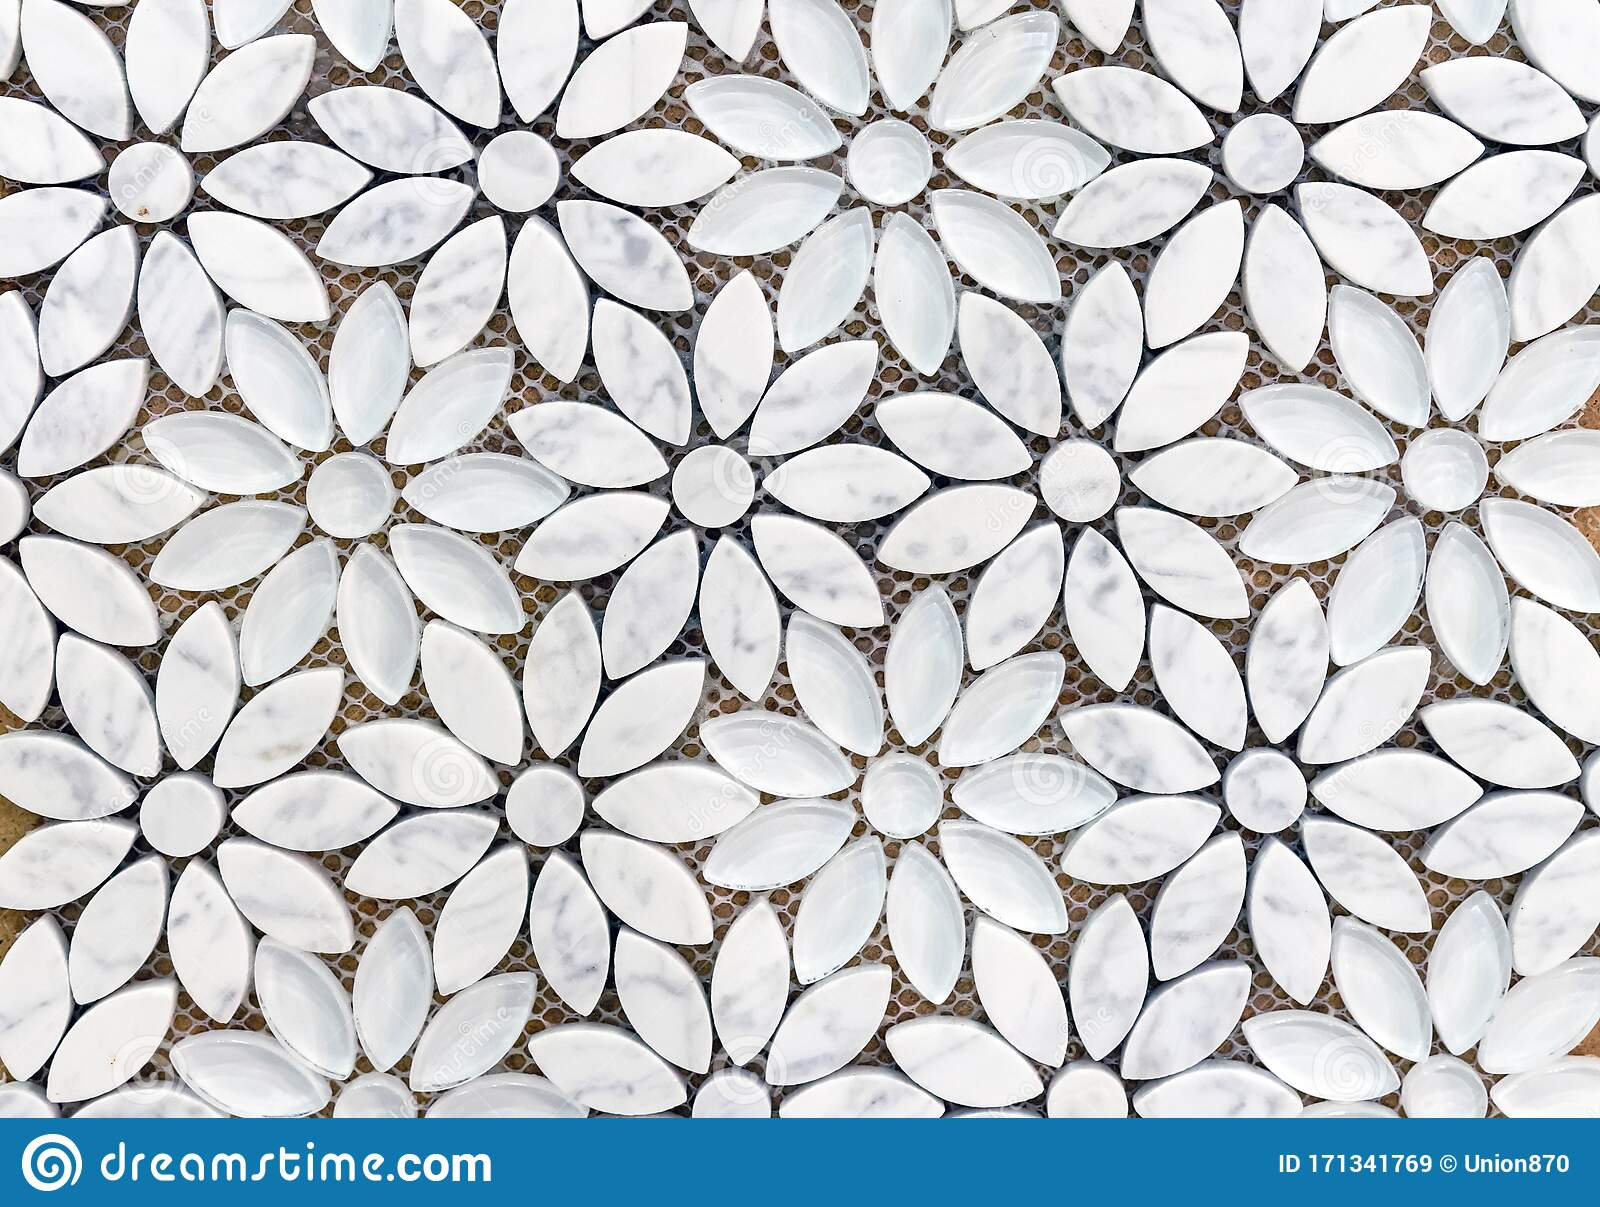 Marble Tiles Mosaic In The Shape Of Flowers Background Of White Marble Flowers Stock Image Image Of Floor Pattern 171341769